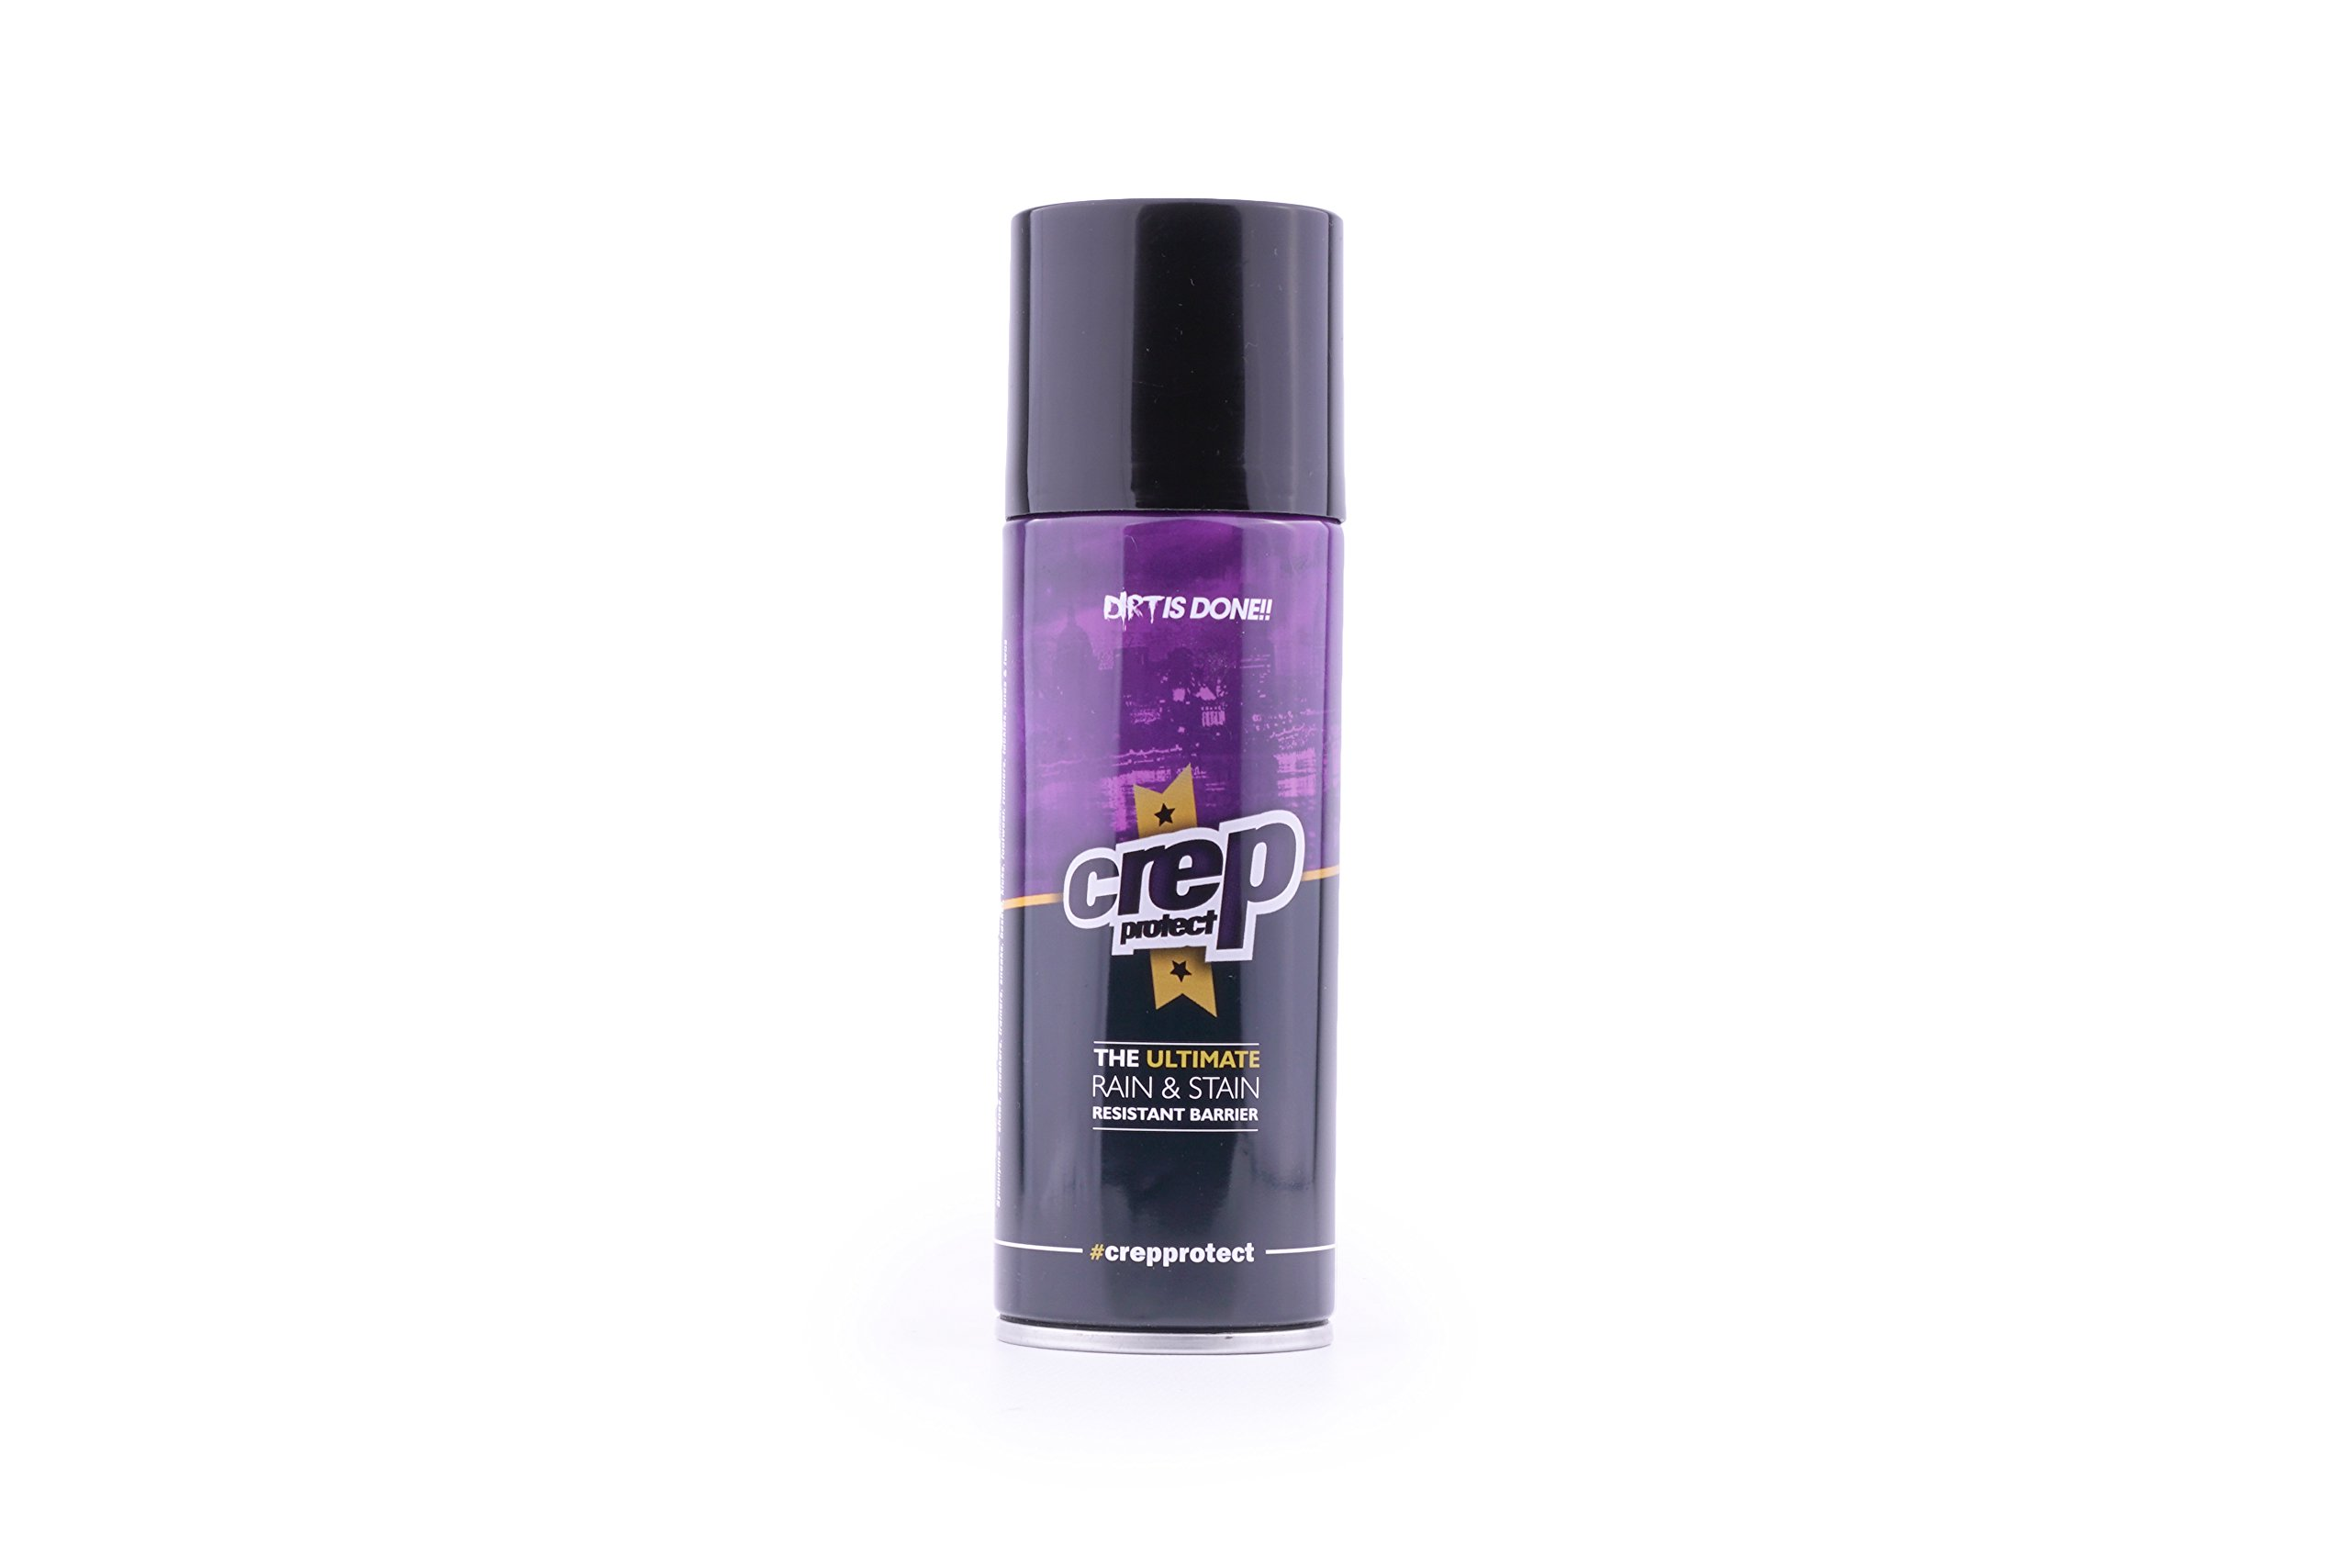 Crep Protect Rain & Stain Shoe Protection Repeler Spray